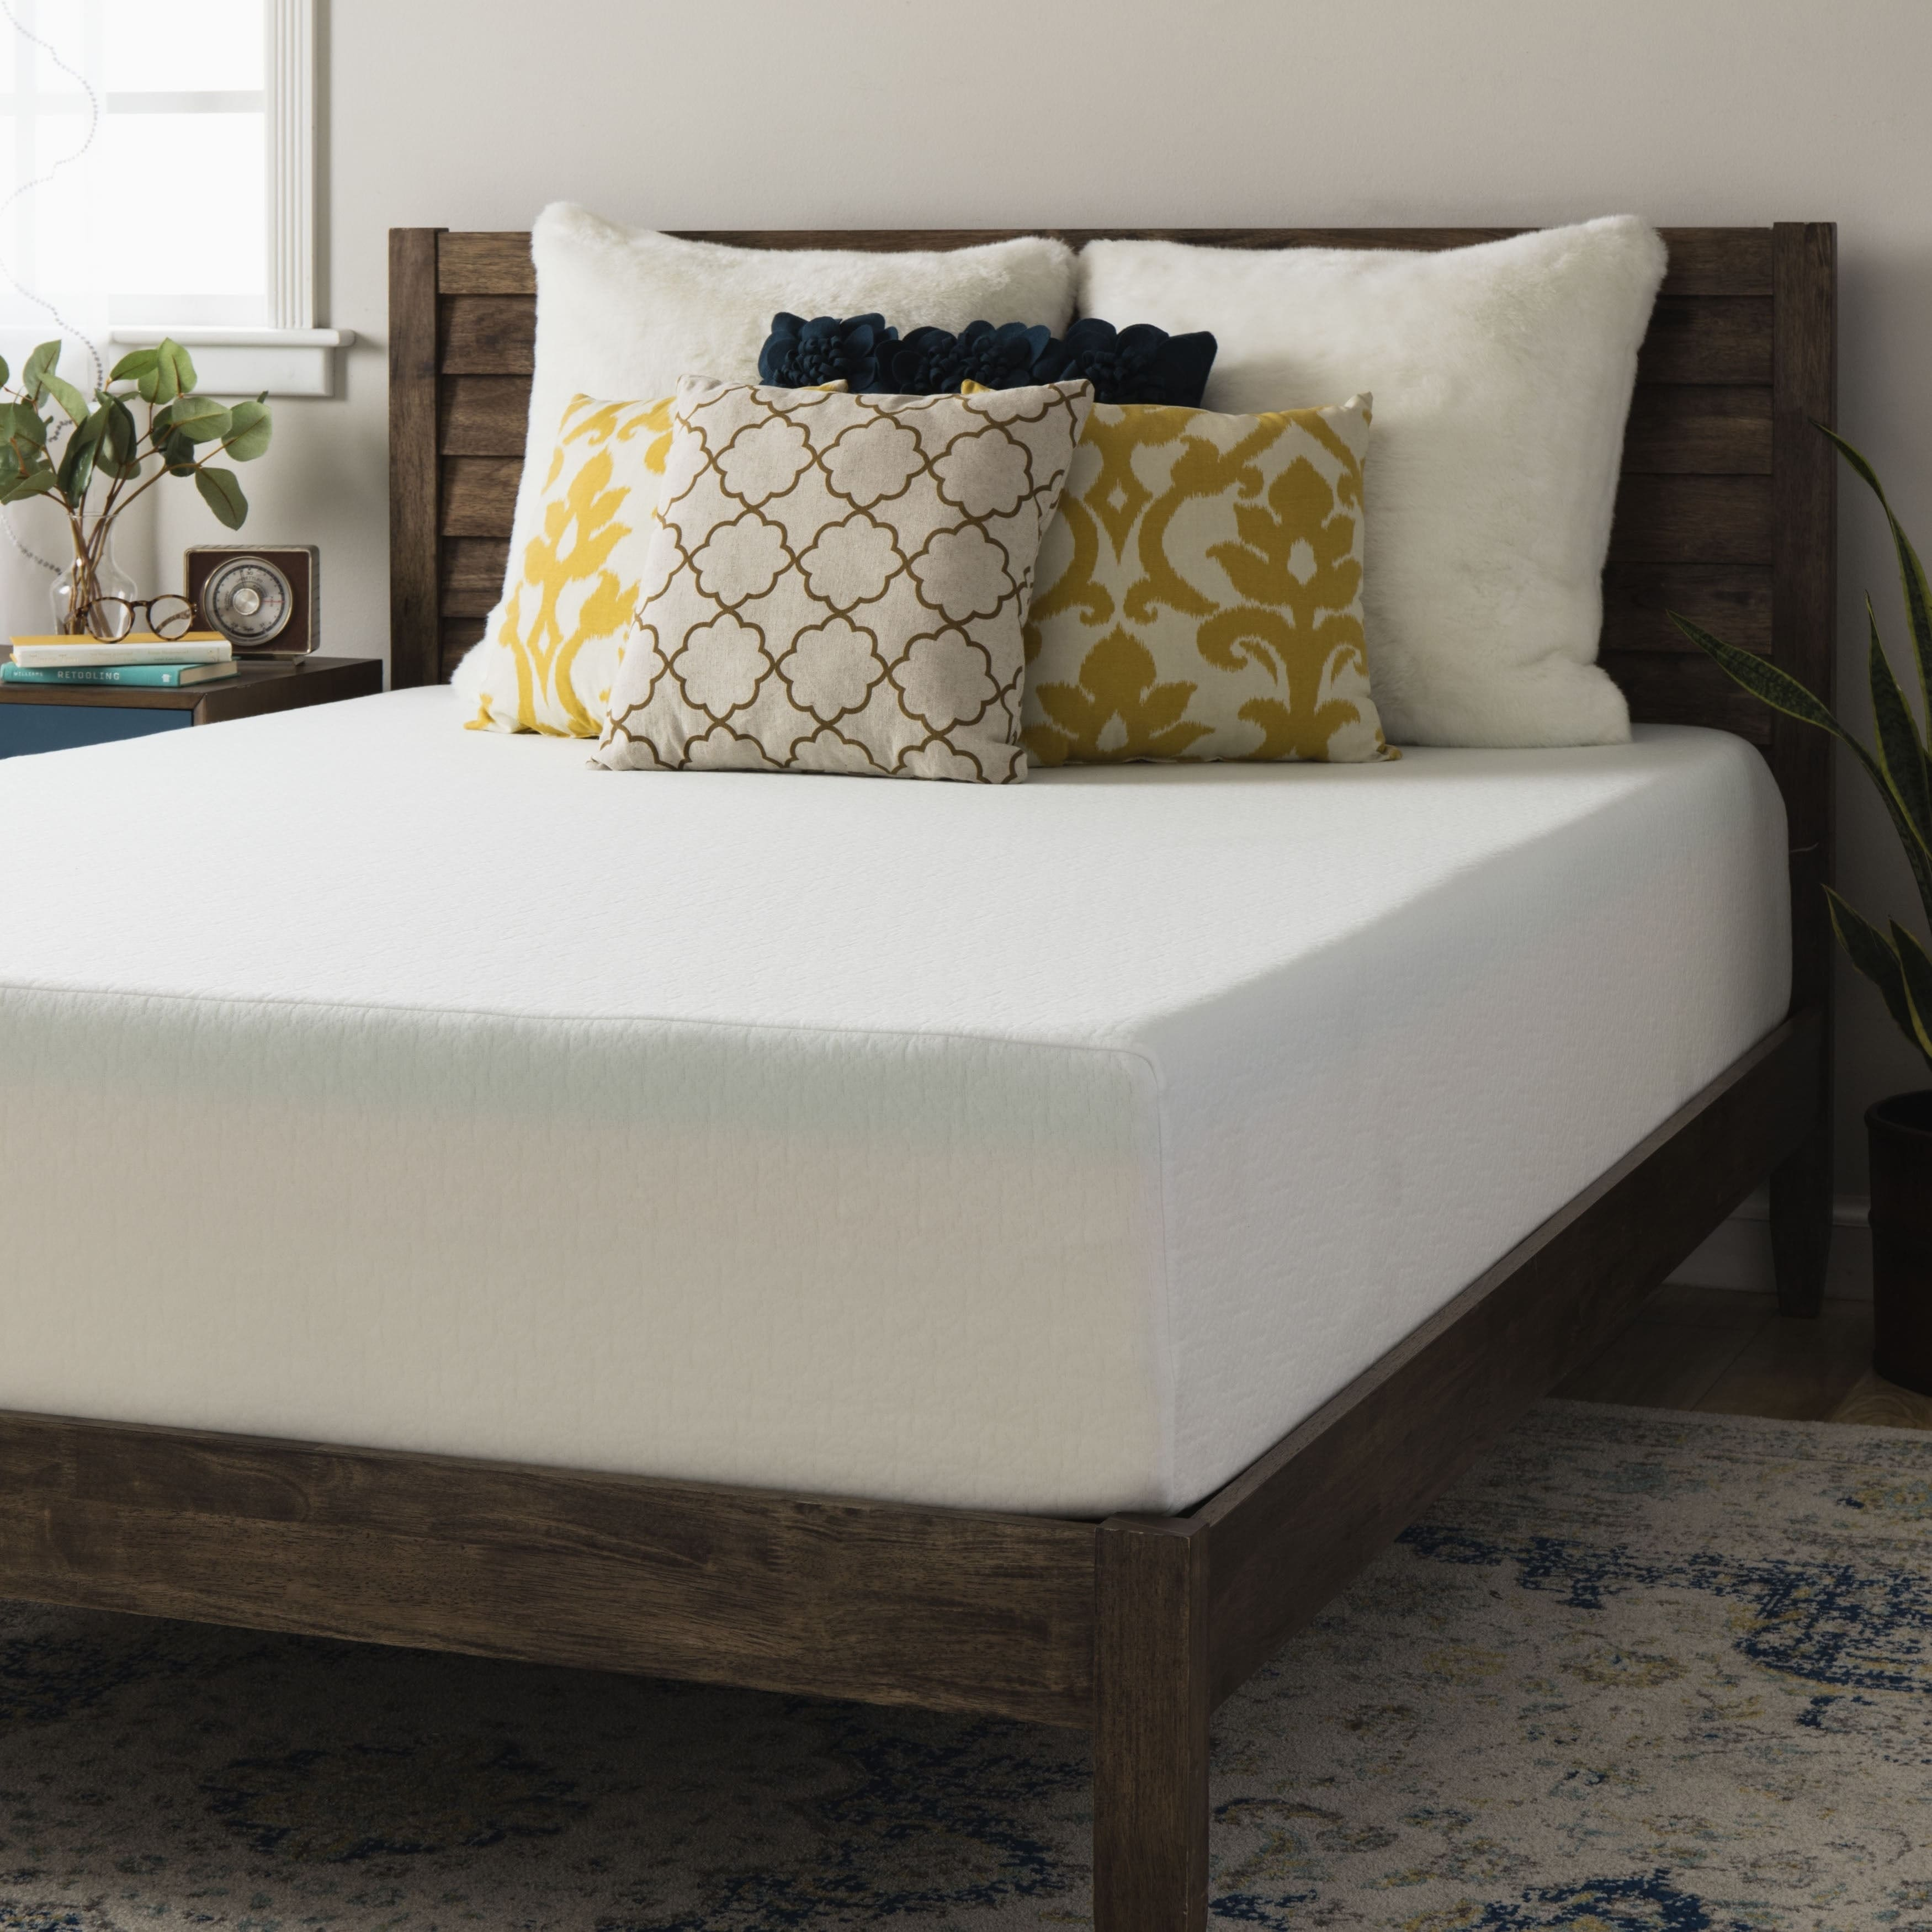 Mattresses - Shop Mattresses by Size, Type, Brands - Overstock